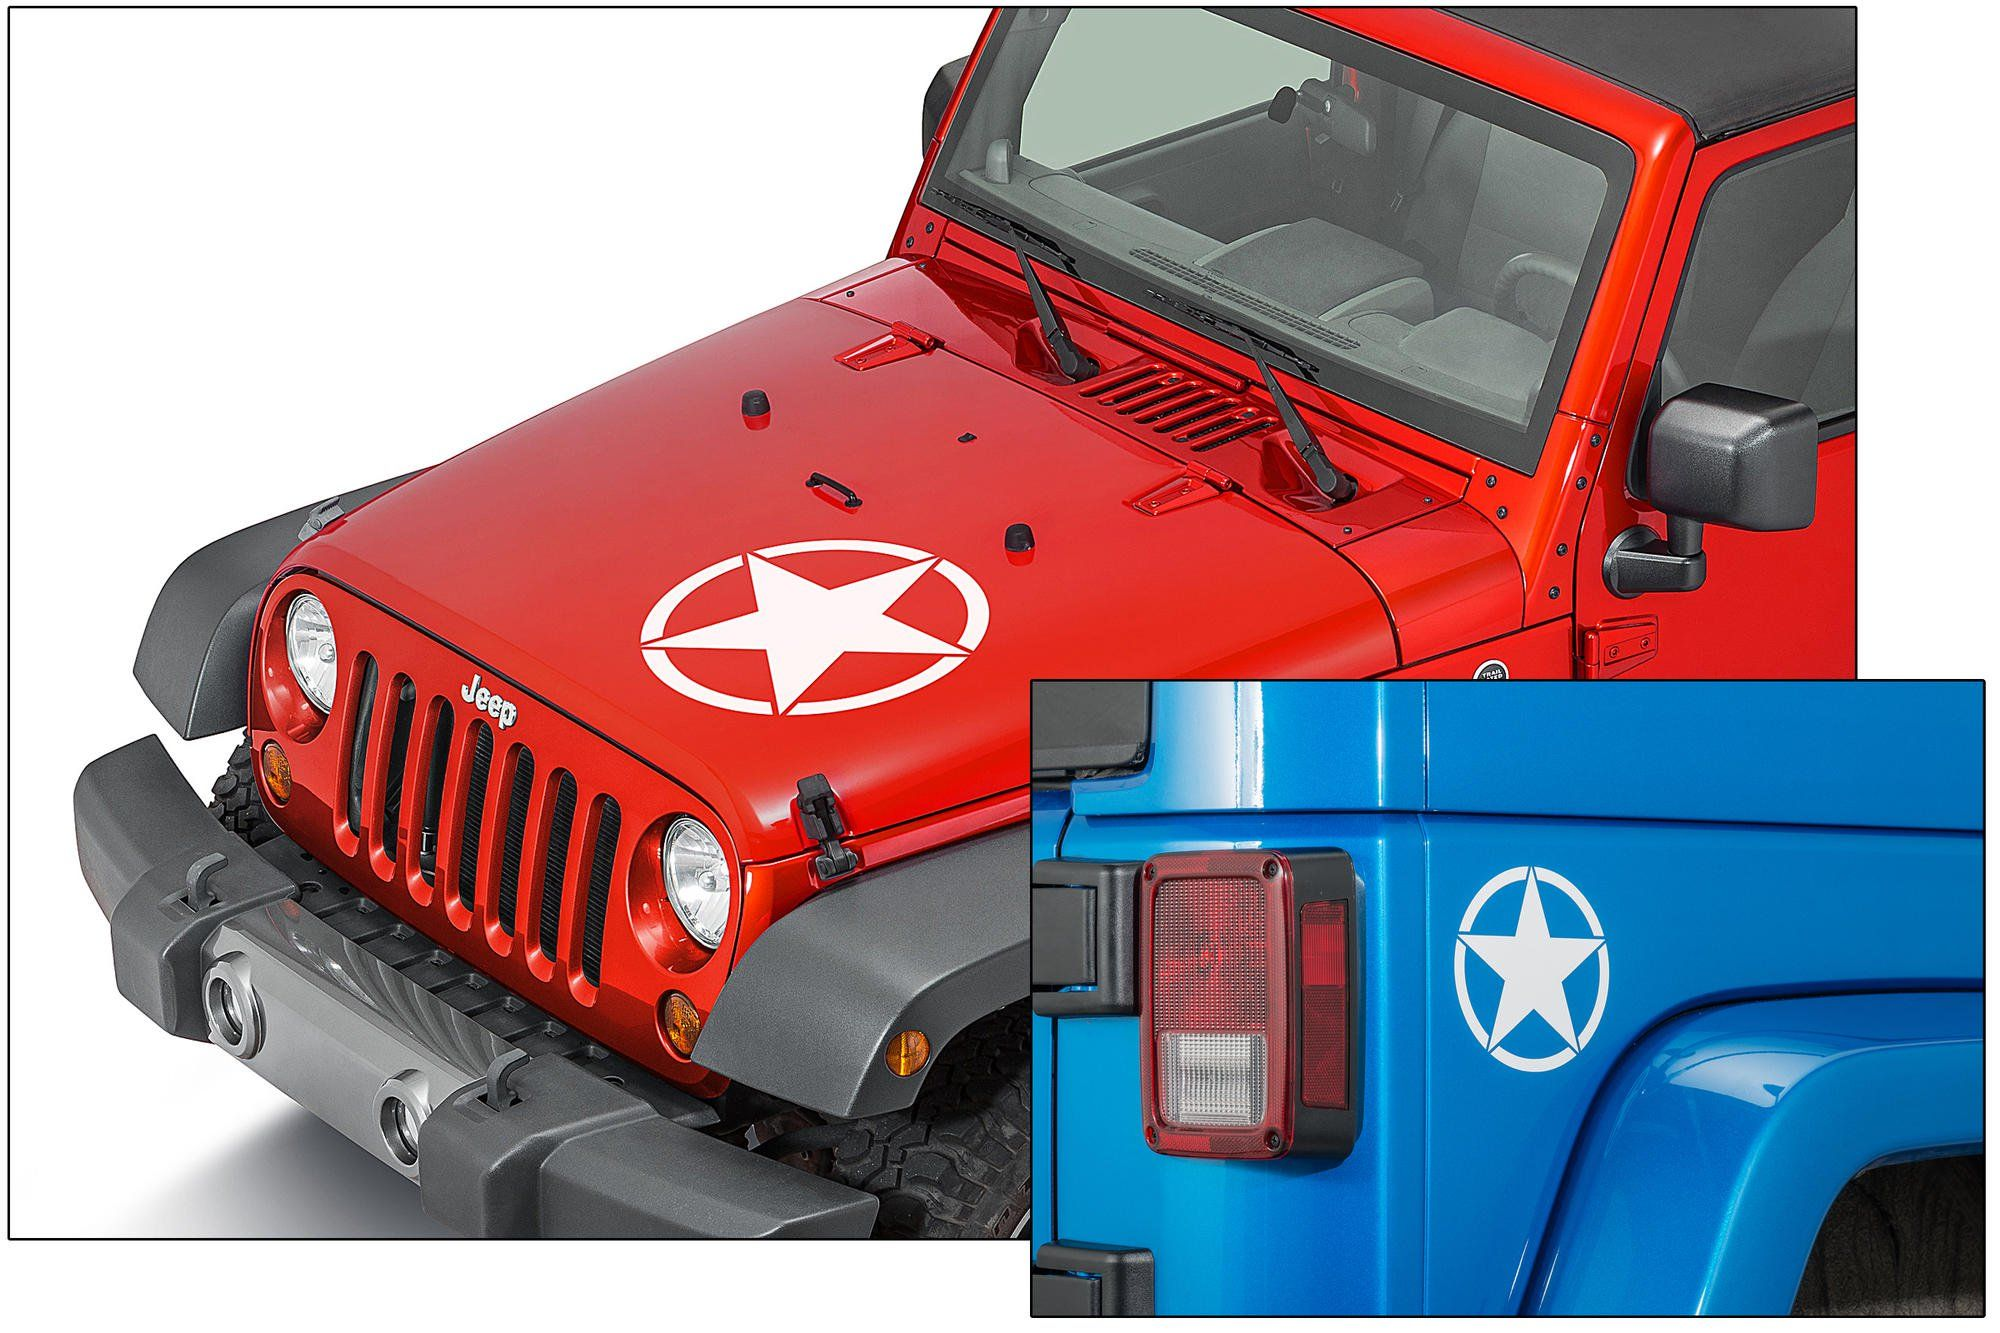 79a38e3caa9245441b5b332cbbf40c16 Take A Look About Jeep Dog Accessories with Captivating Gallery Cars Review